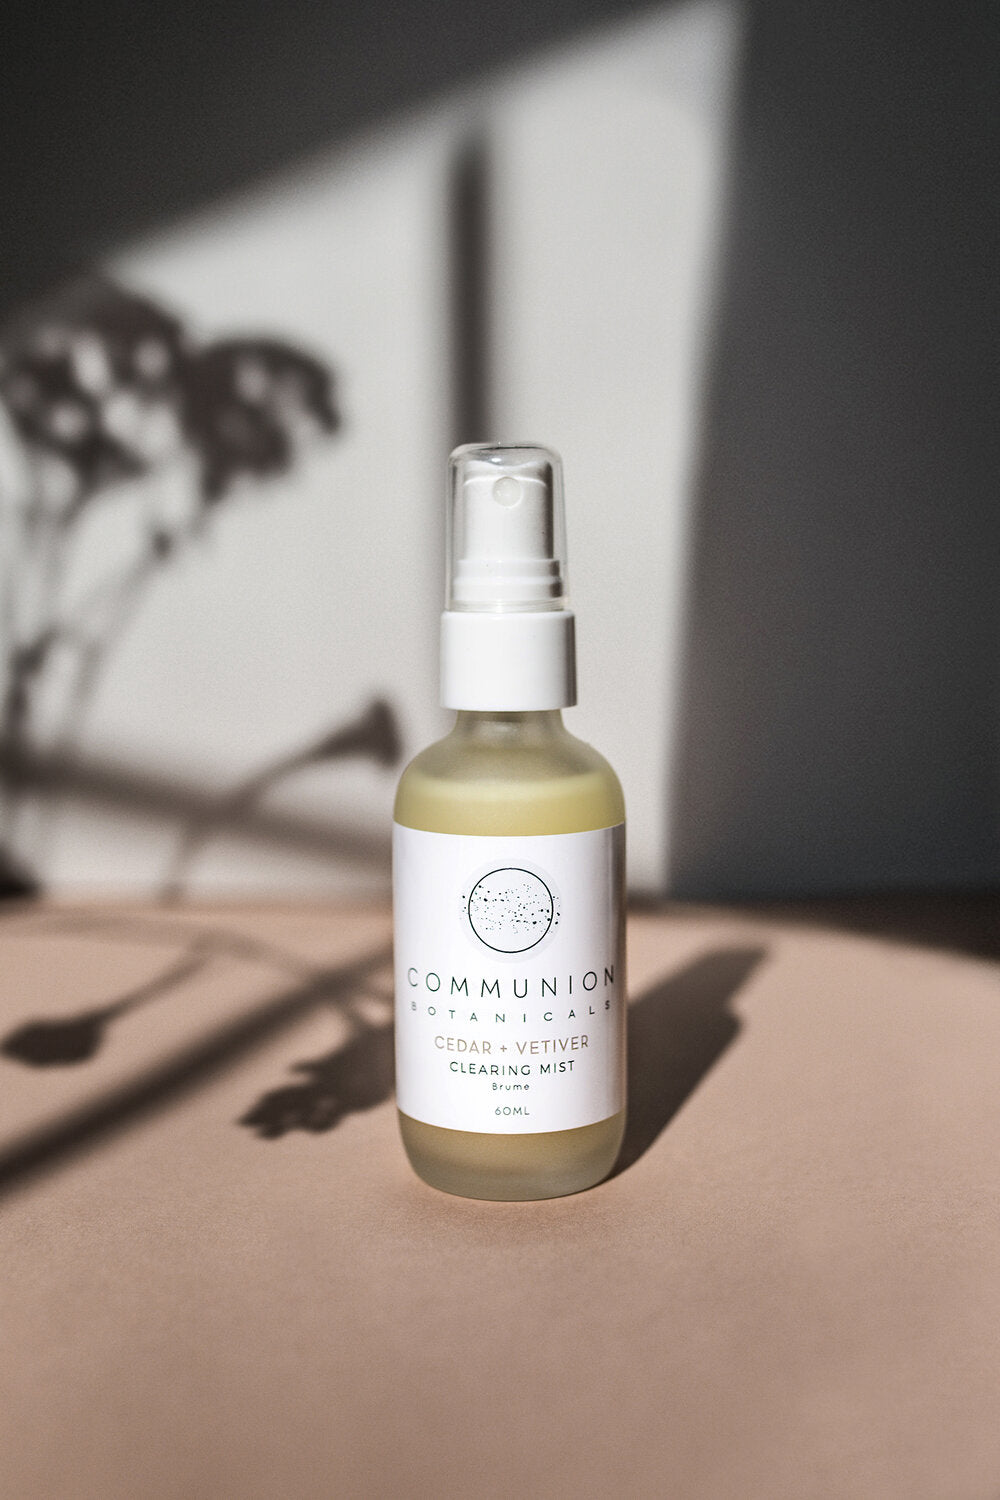 New! Cedar + Vetiver Clearing Mist by Communion Botanicals